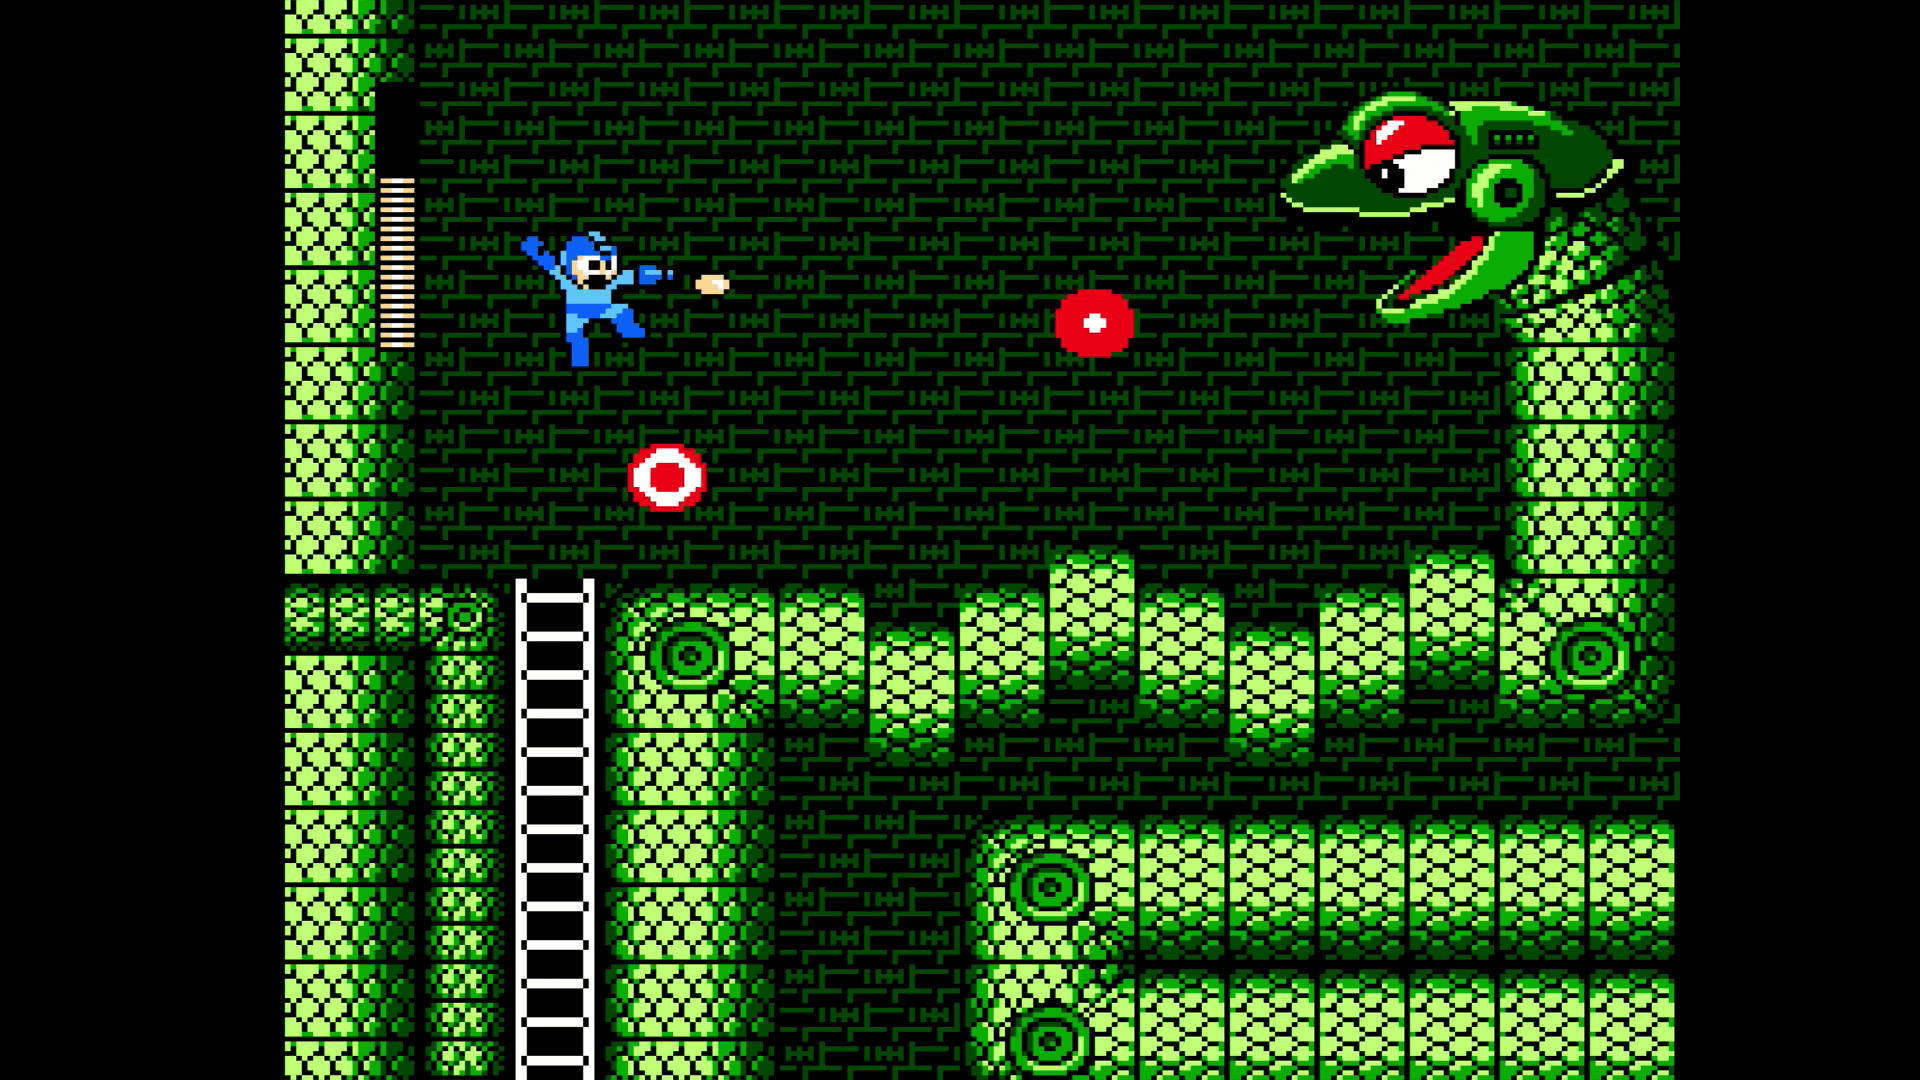 Capcom Announces Mega Man Legacy Collection and Confirms E3 Lineup - 2015-06-08 11:13:16